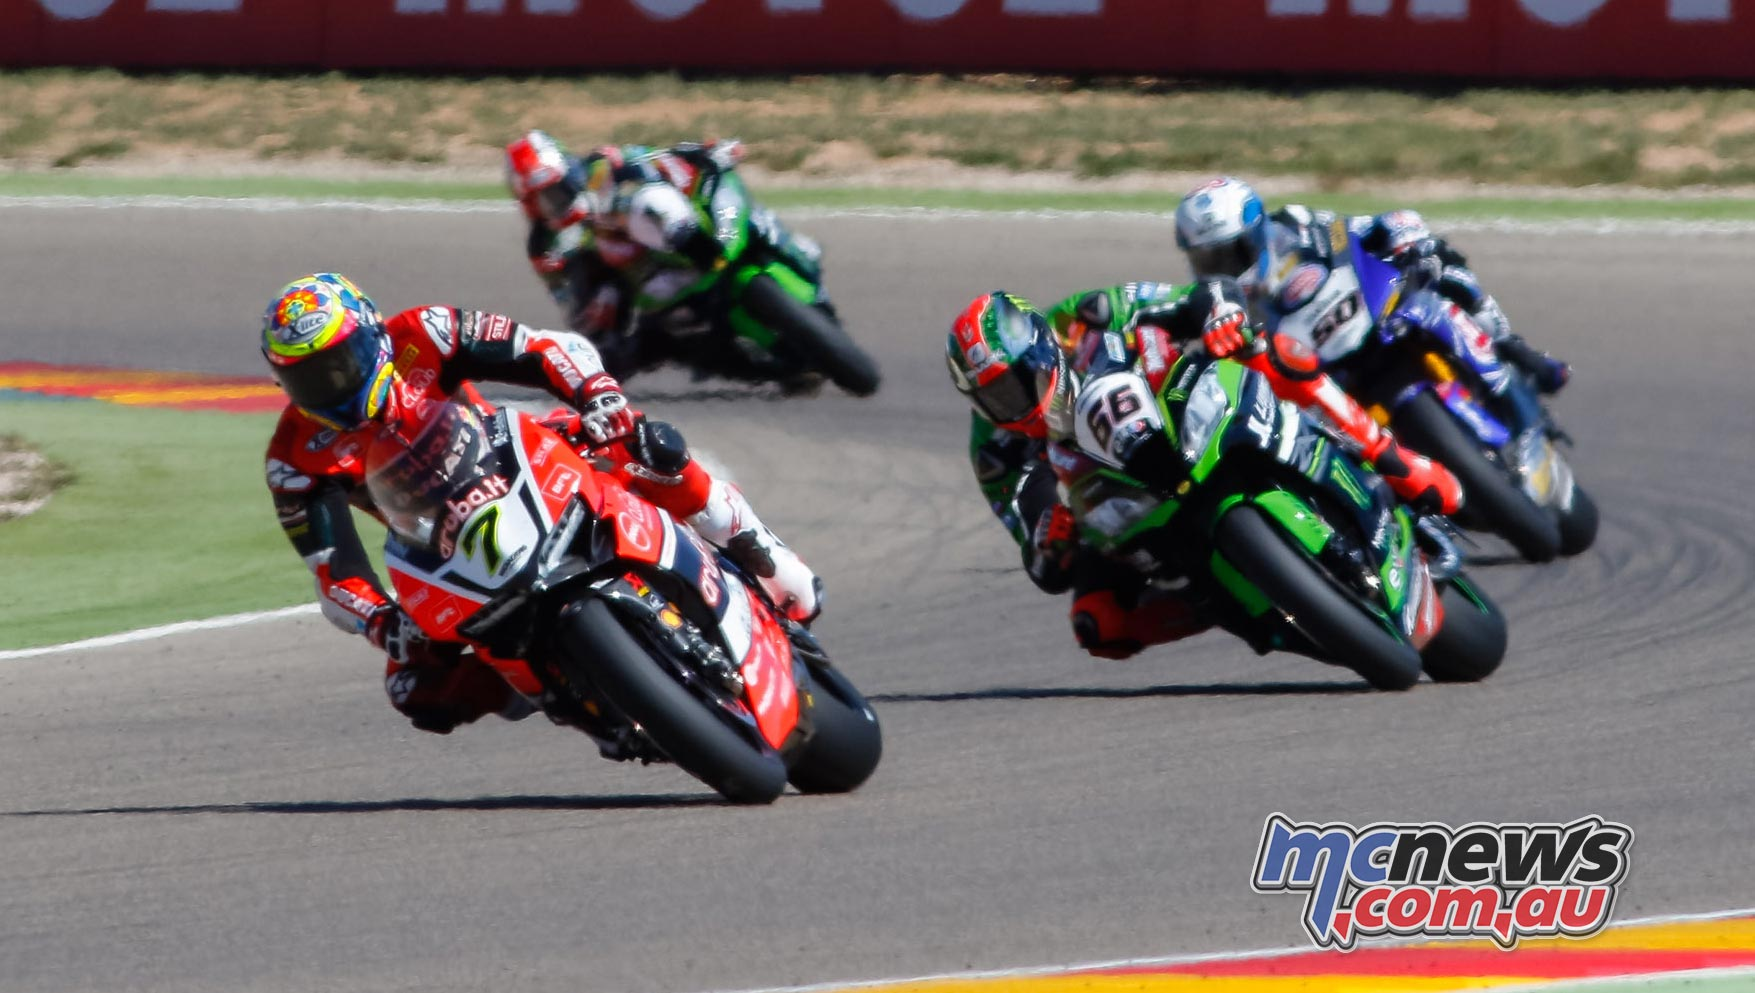 Chaz Davies leads Tom Sykes